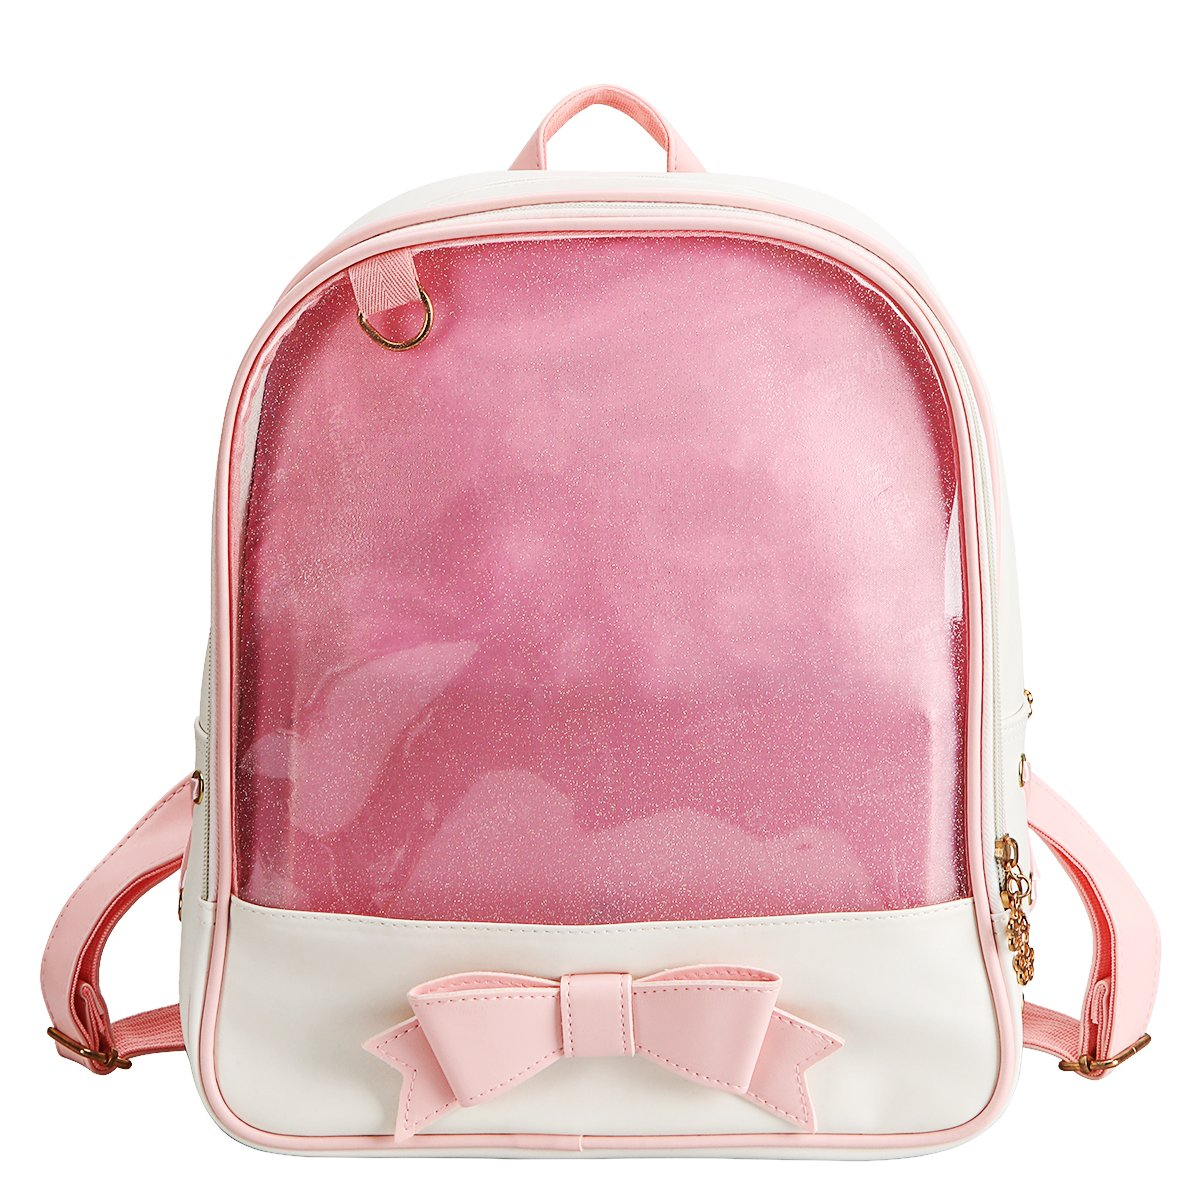 xhorizon FL1 Girl's Bowknot Transparent Backpack Large Schoolbag Travel Daypack